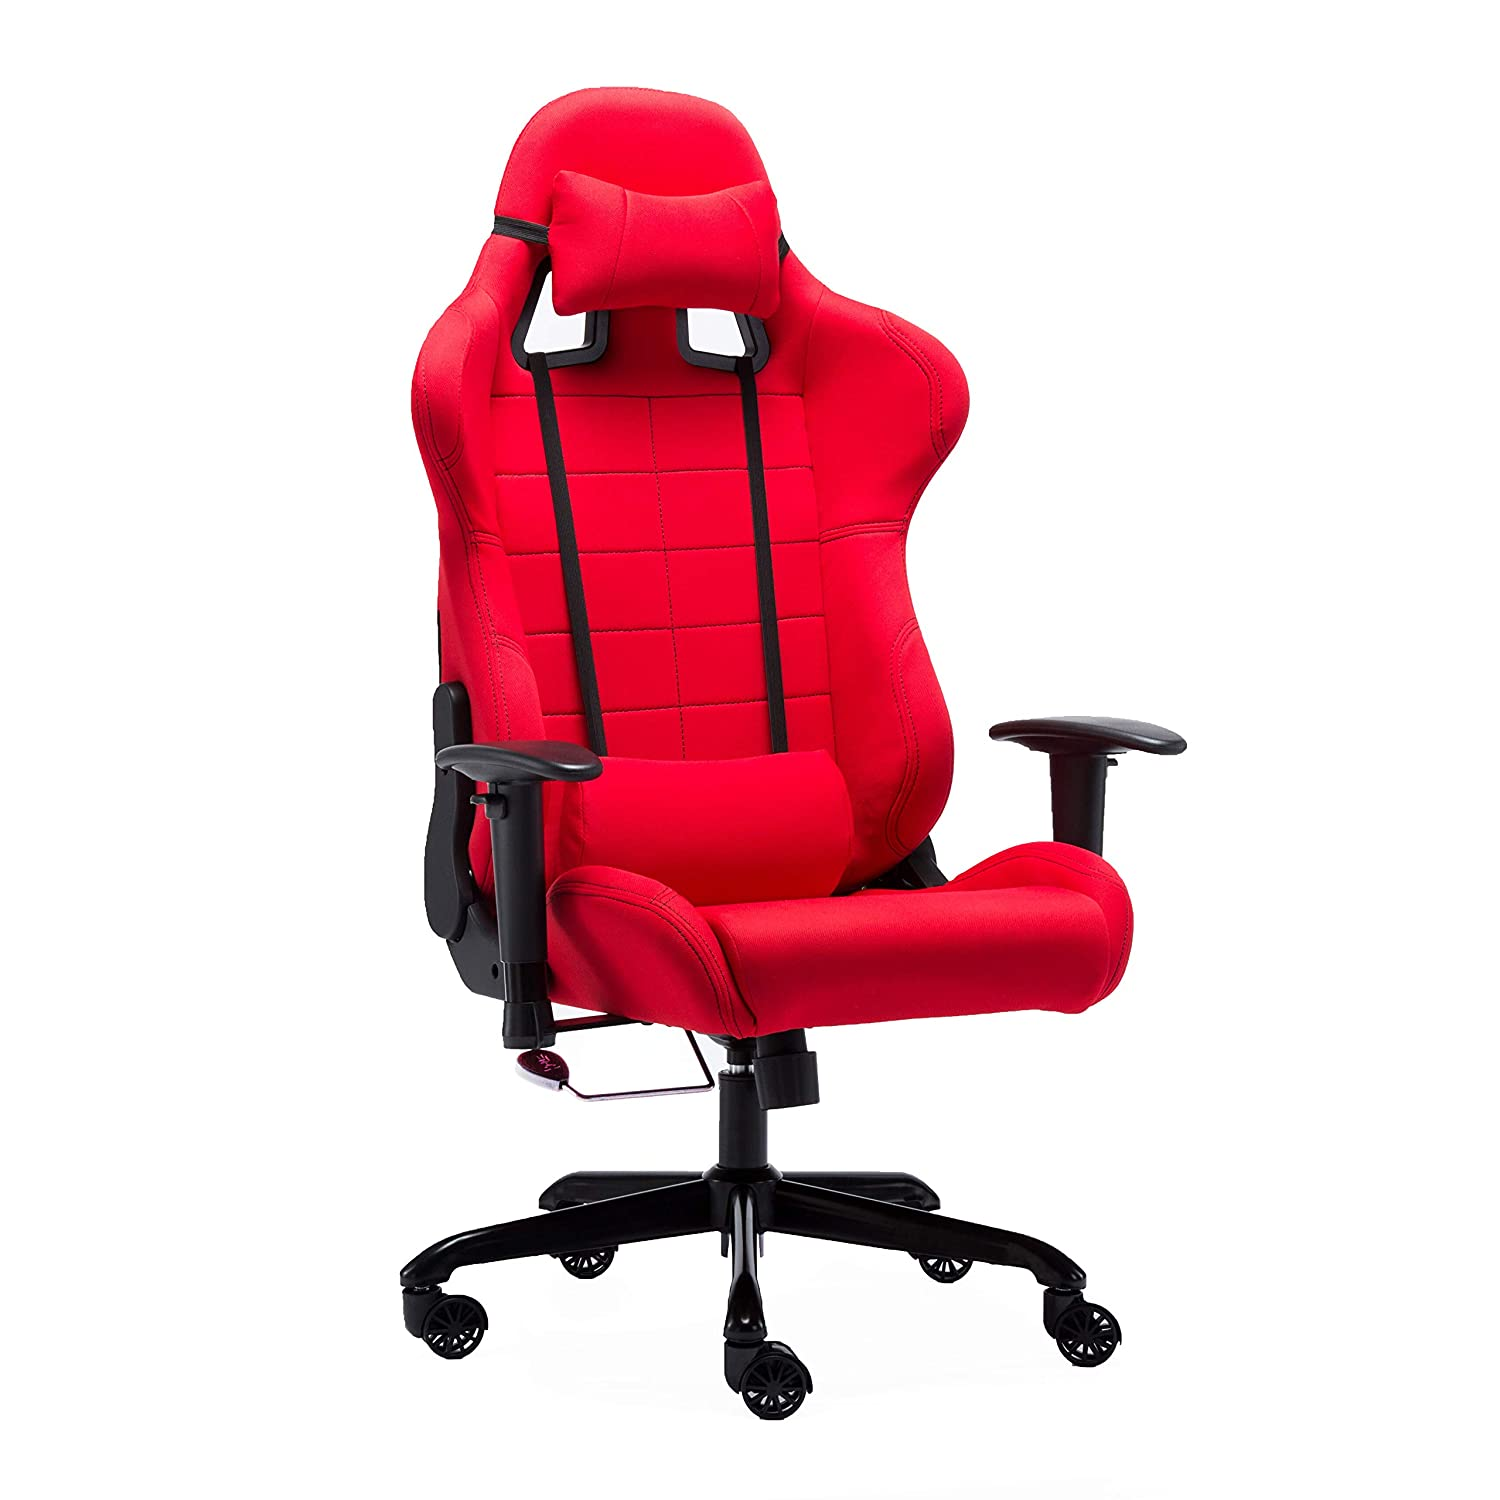 Red Irene House 802 Series PC Rock Gaming Racing Chair with Headrest Lumbar Pillows (Red)